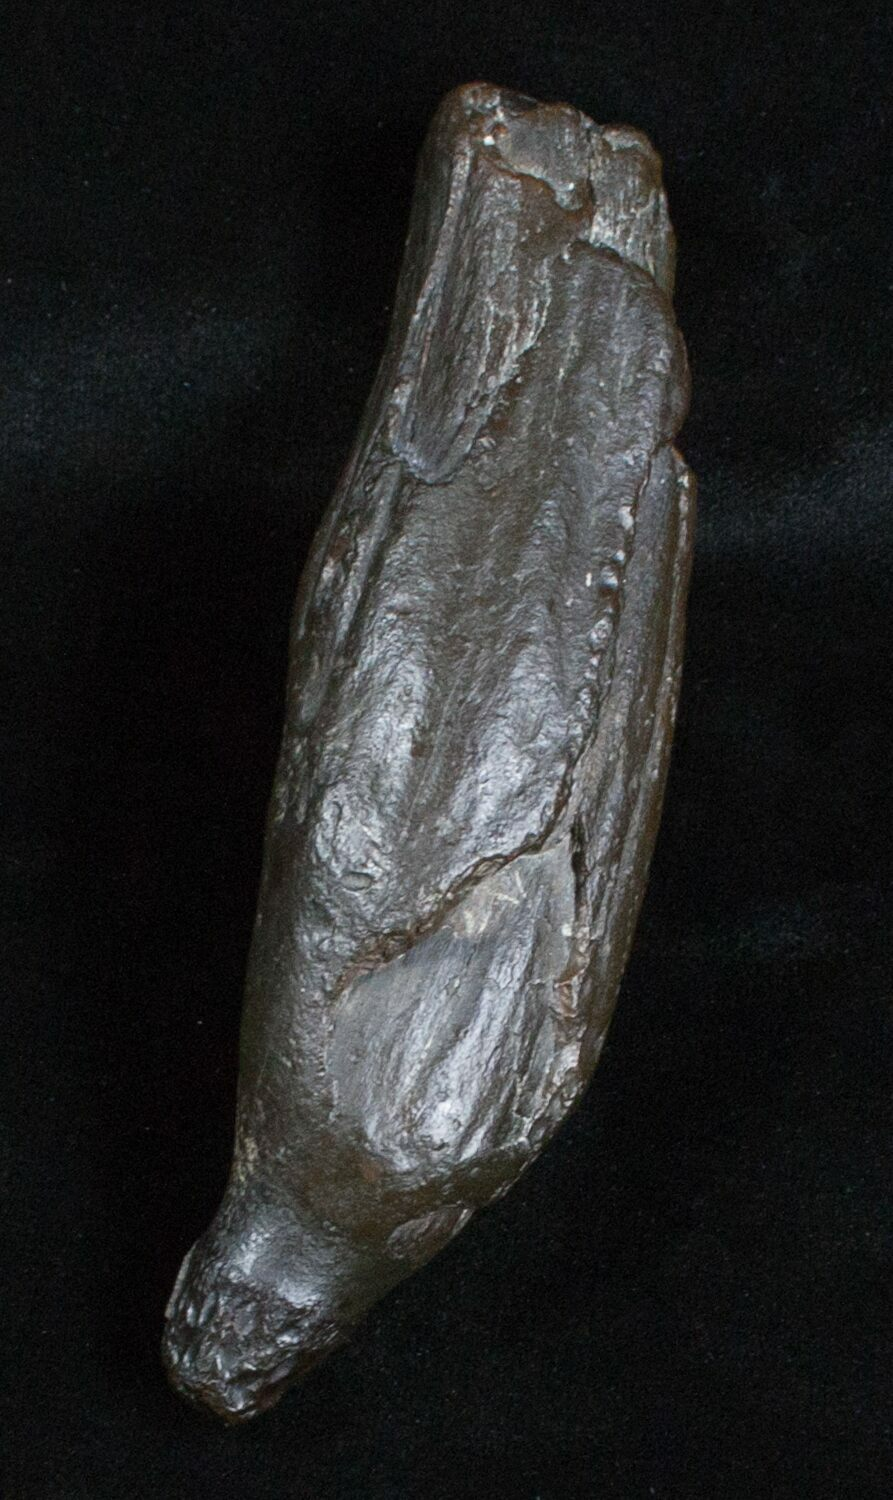 Your petrified whale sperm remarkable, very